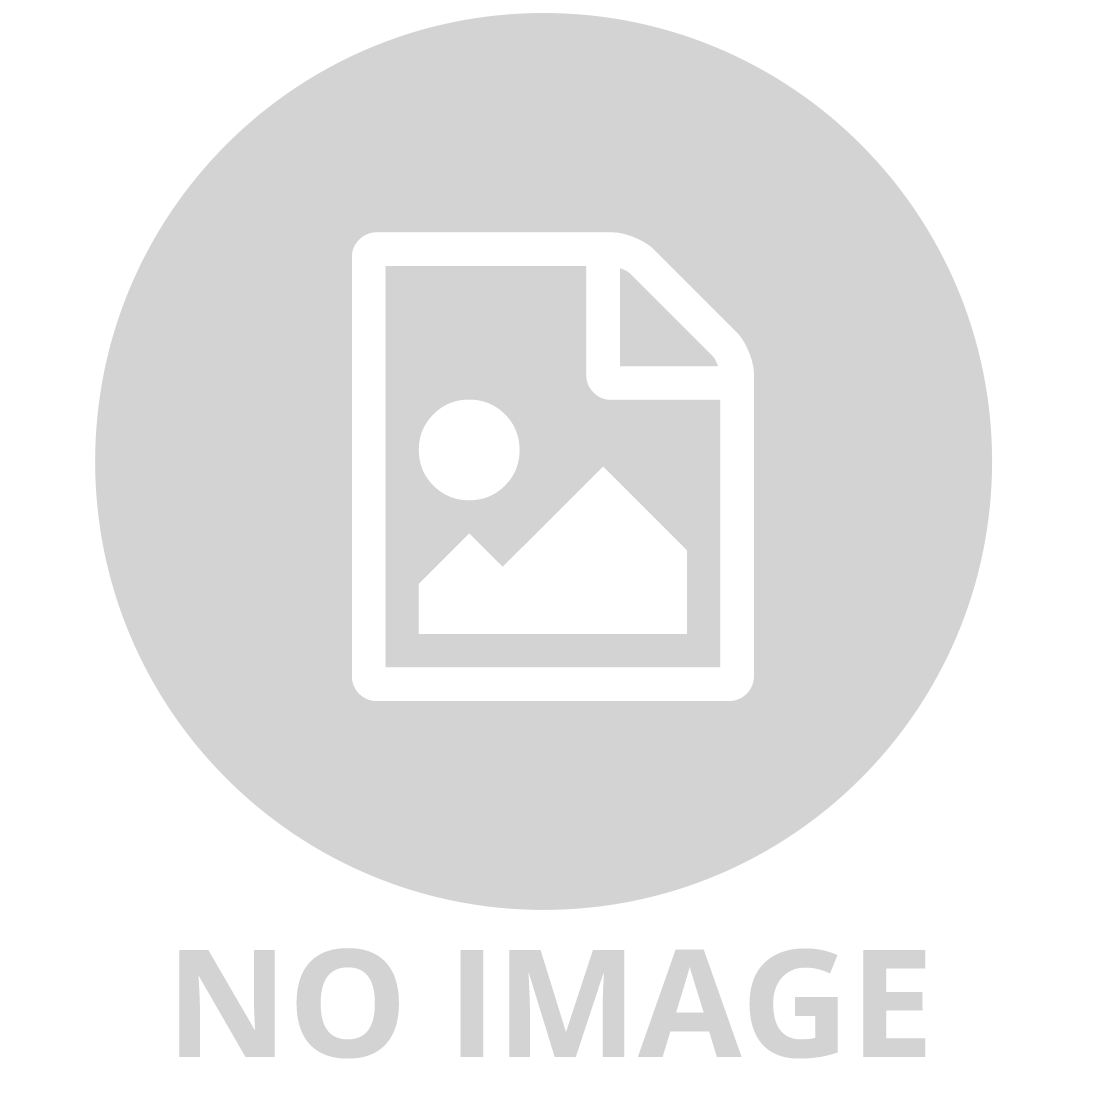 SHOPKINS HAPPY PLACES LIL' SHOPPIE PACK - PAMPERED PONY STABLE